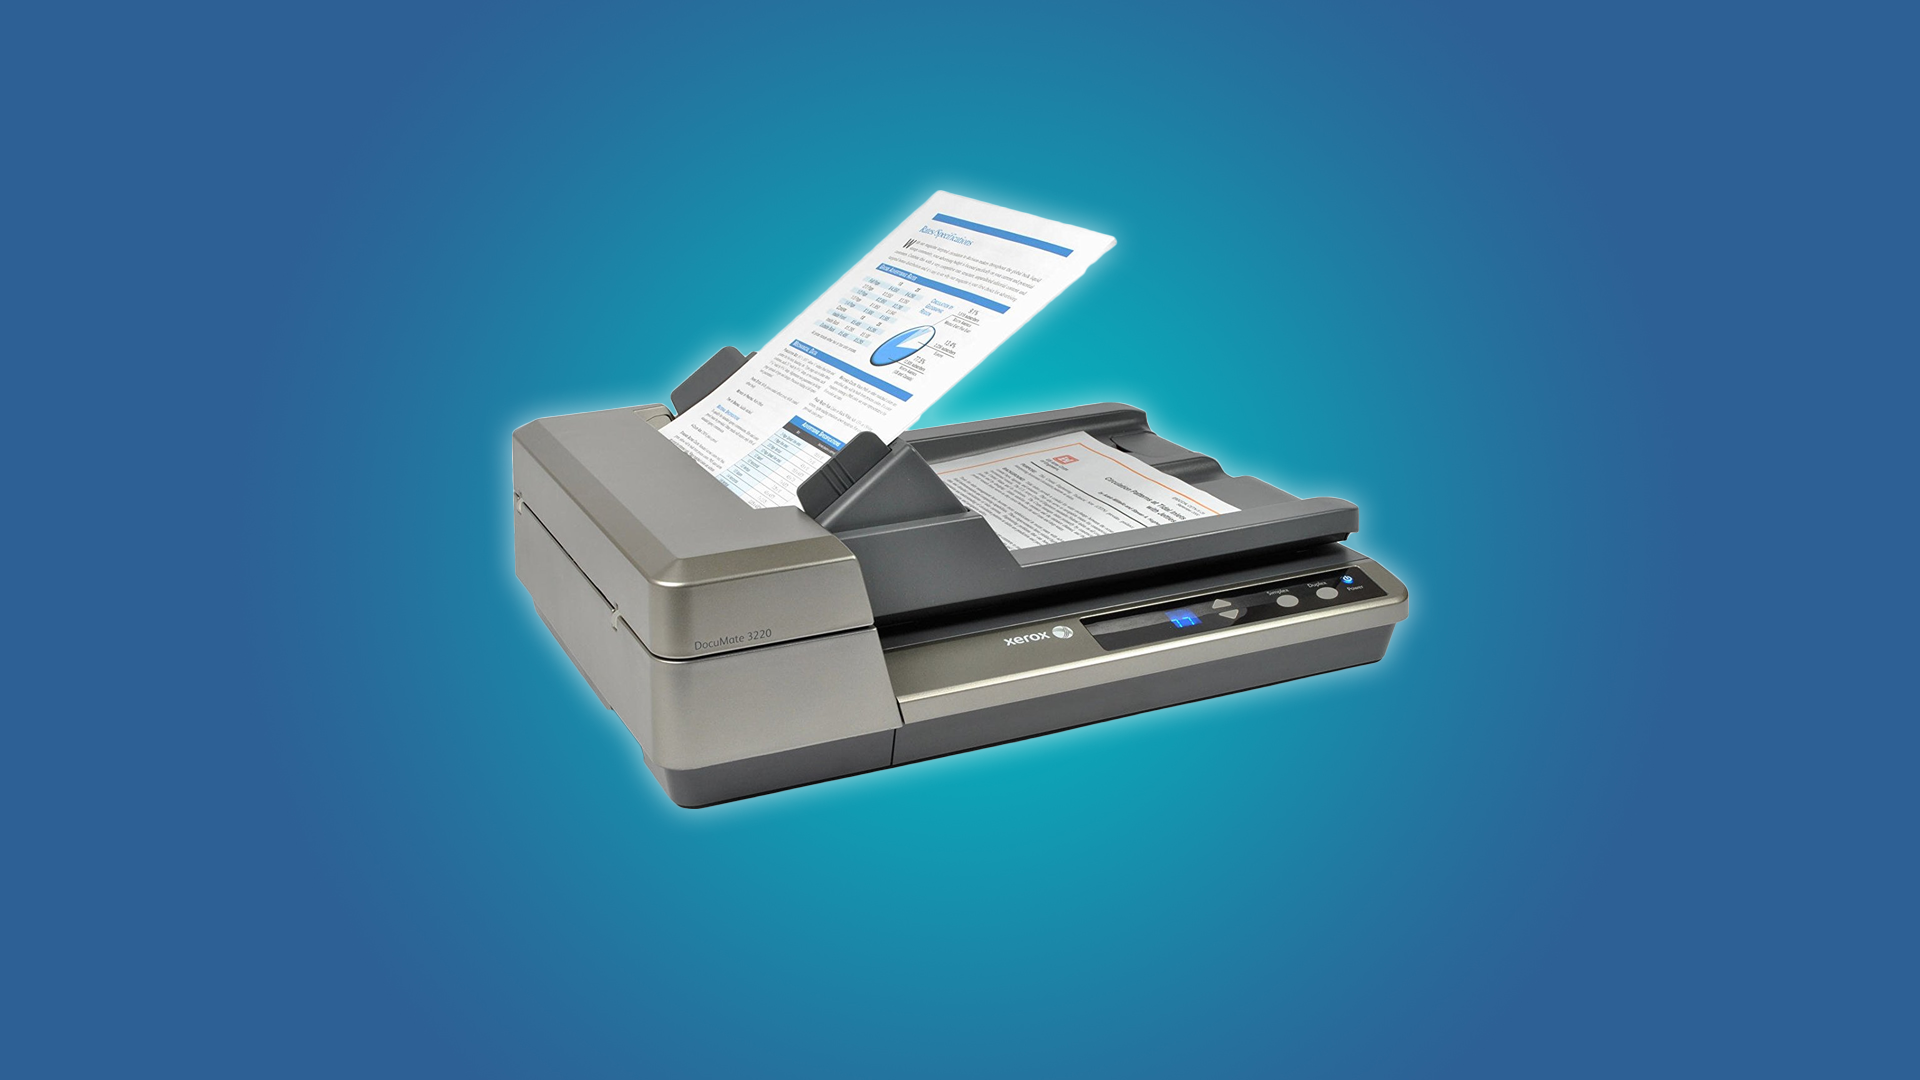 The Best Document Scanners for Your Home or Office | The Sheen Blog